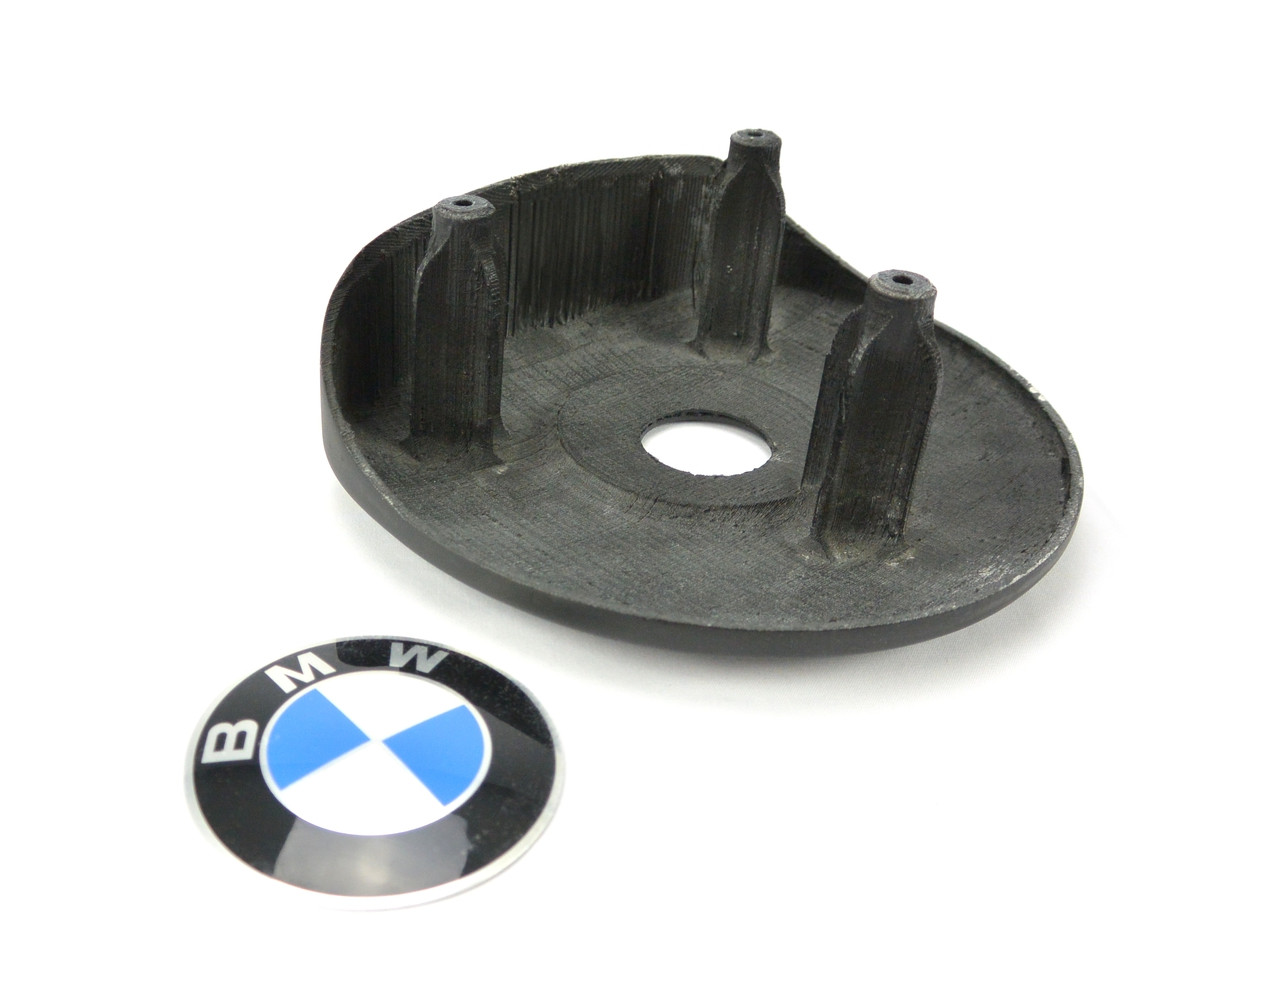 E9X Steering Wheel SRS Airbag Delete Panel. Fully incorporated stand-offs for factory mounting points on the E9X Airbag Delete for BMW